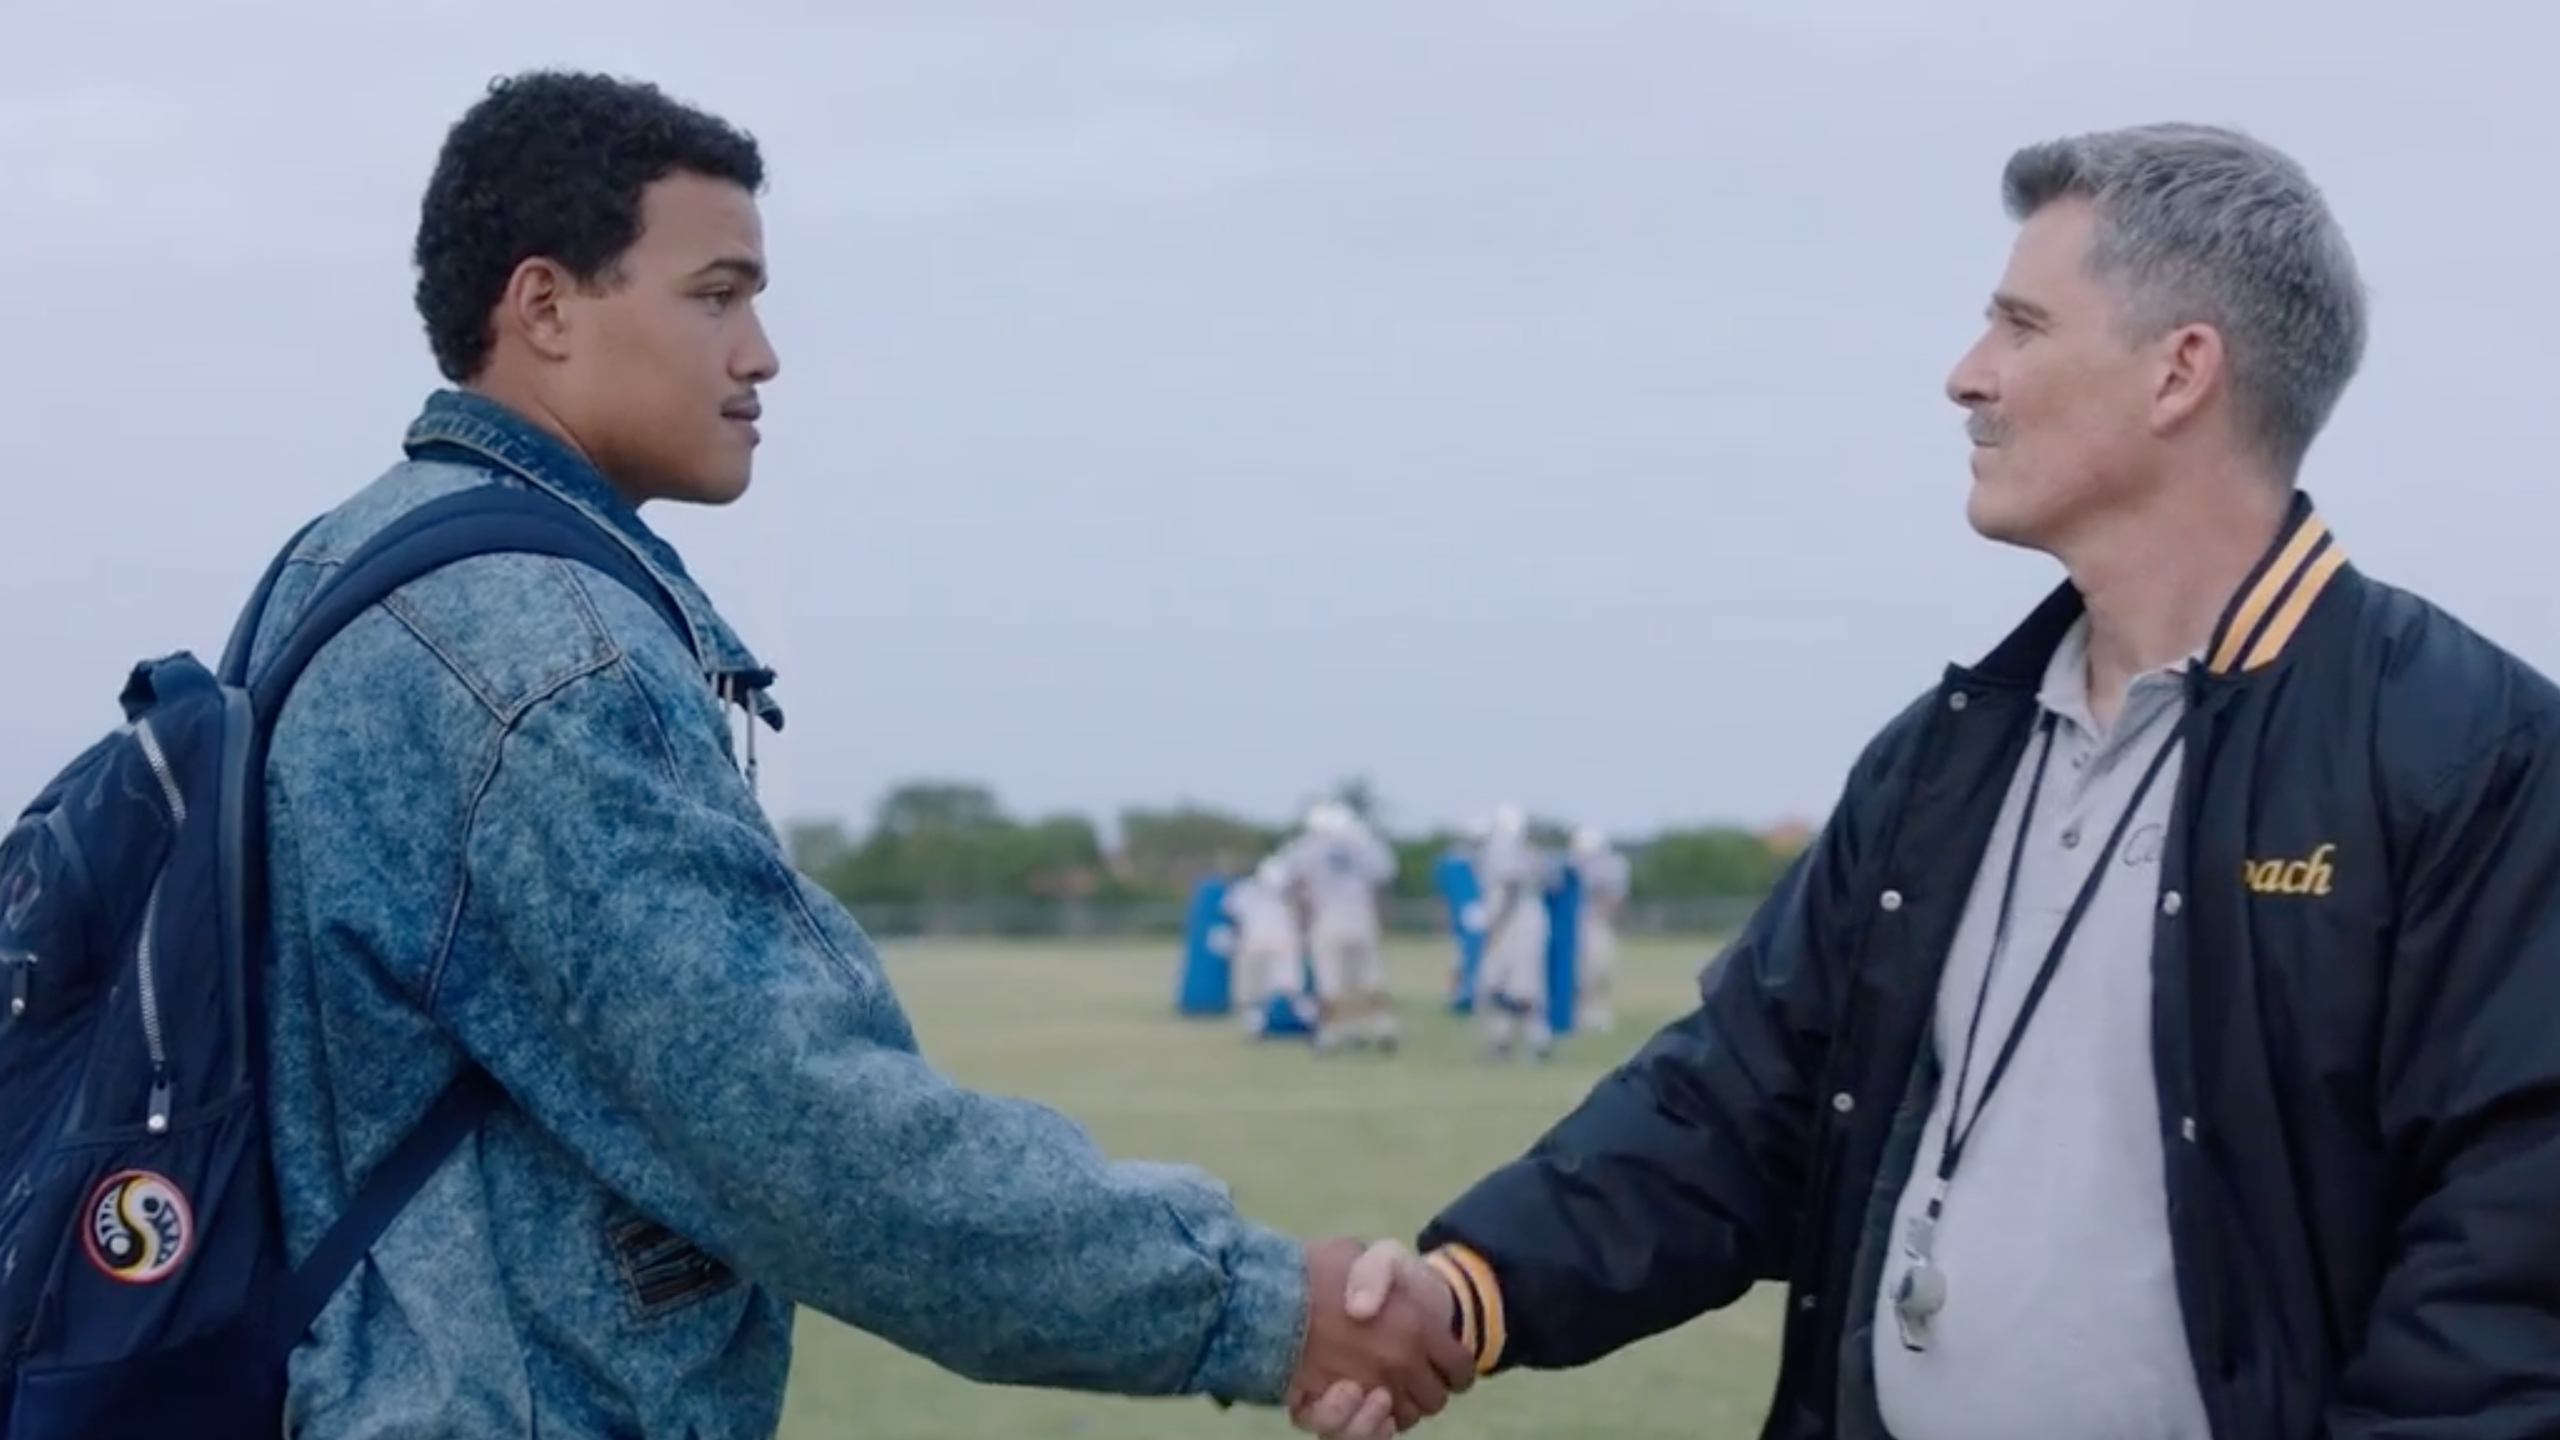 A scene from The Rock's new show where young Dwayne Johnson shakes his coaches hand.